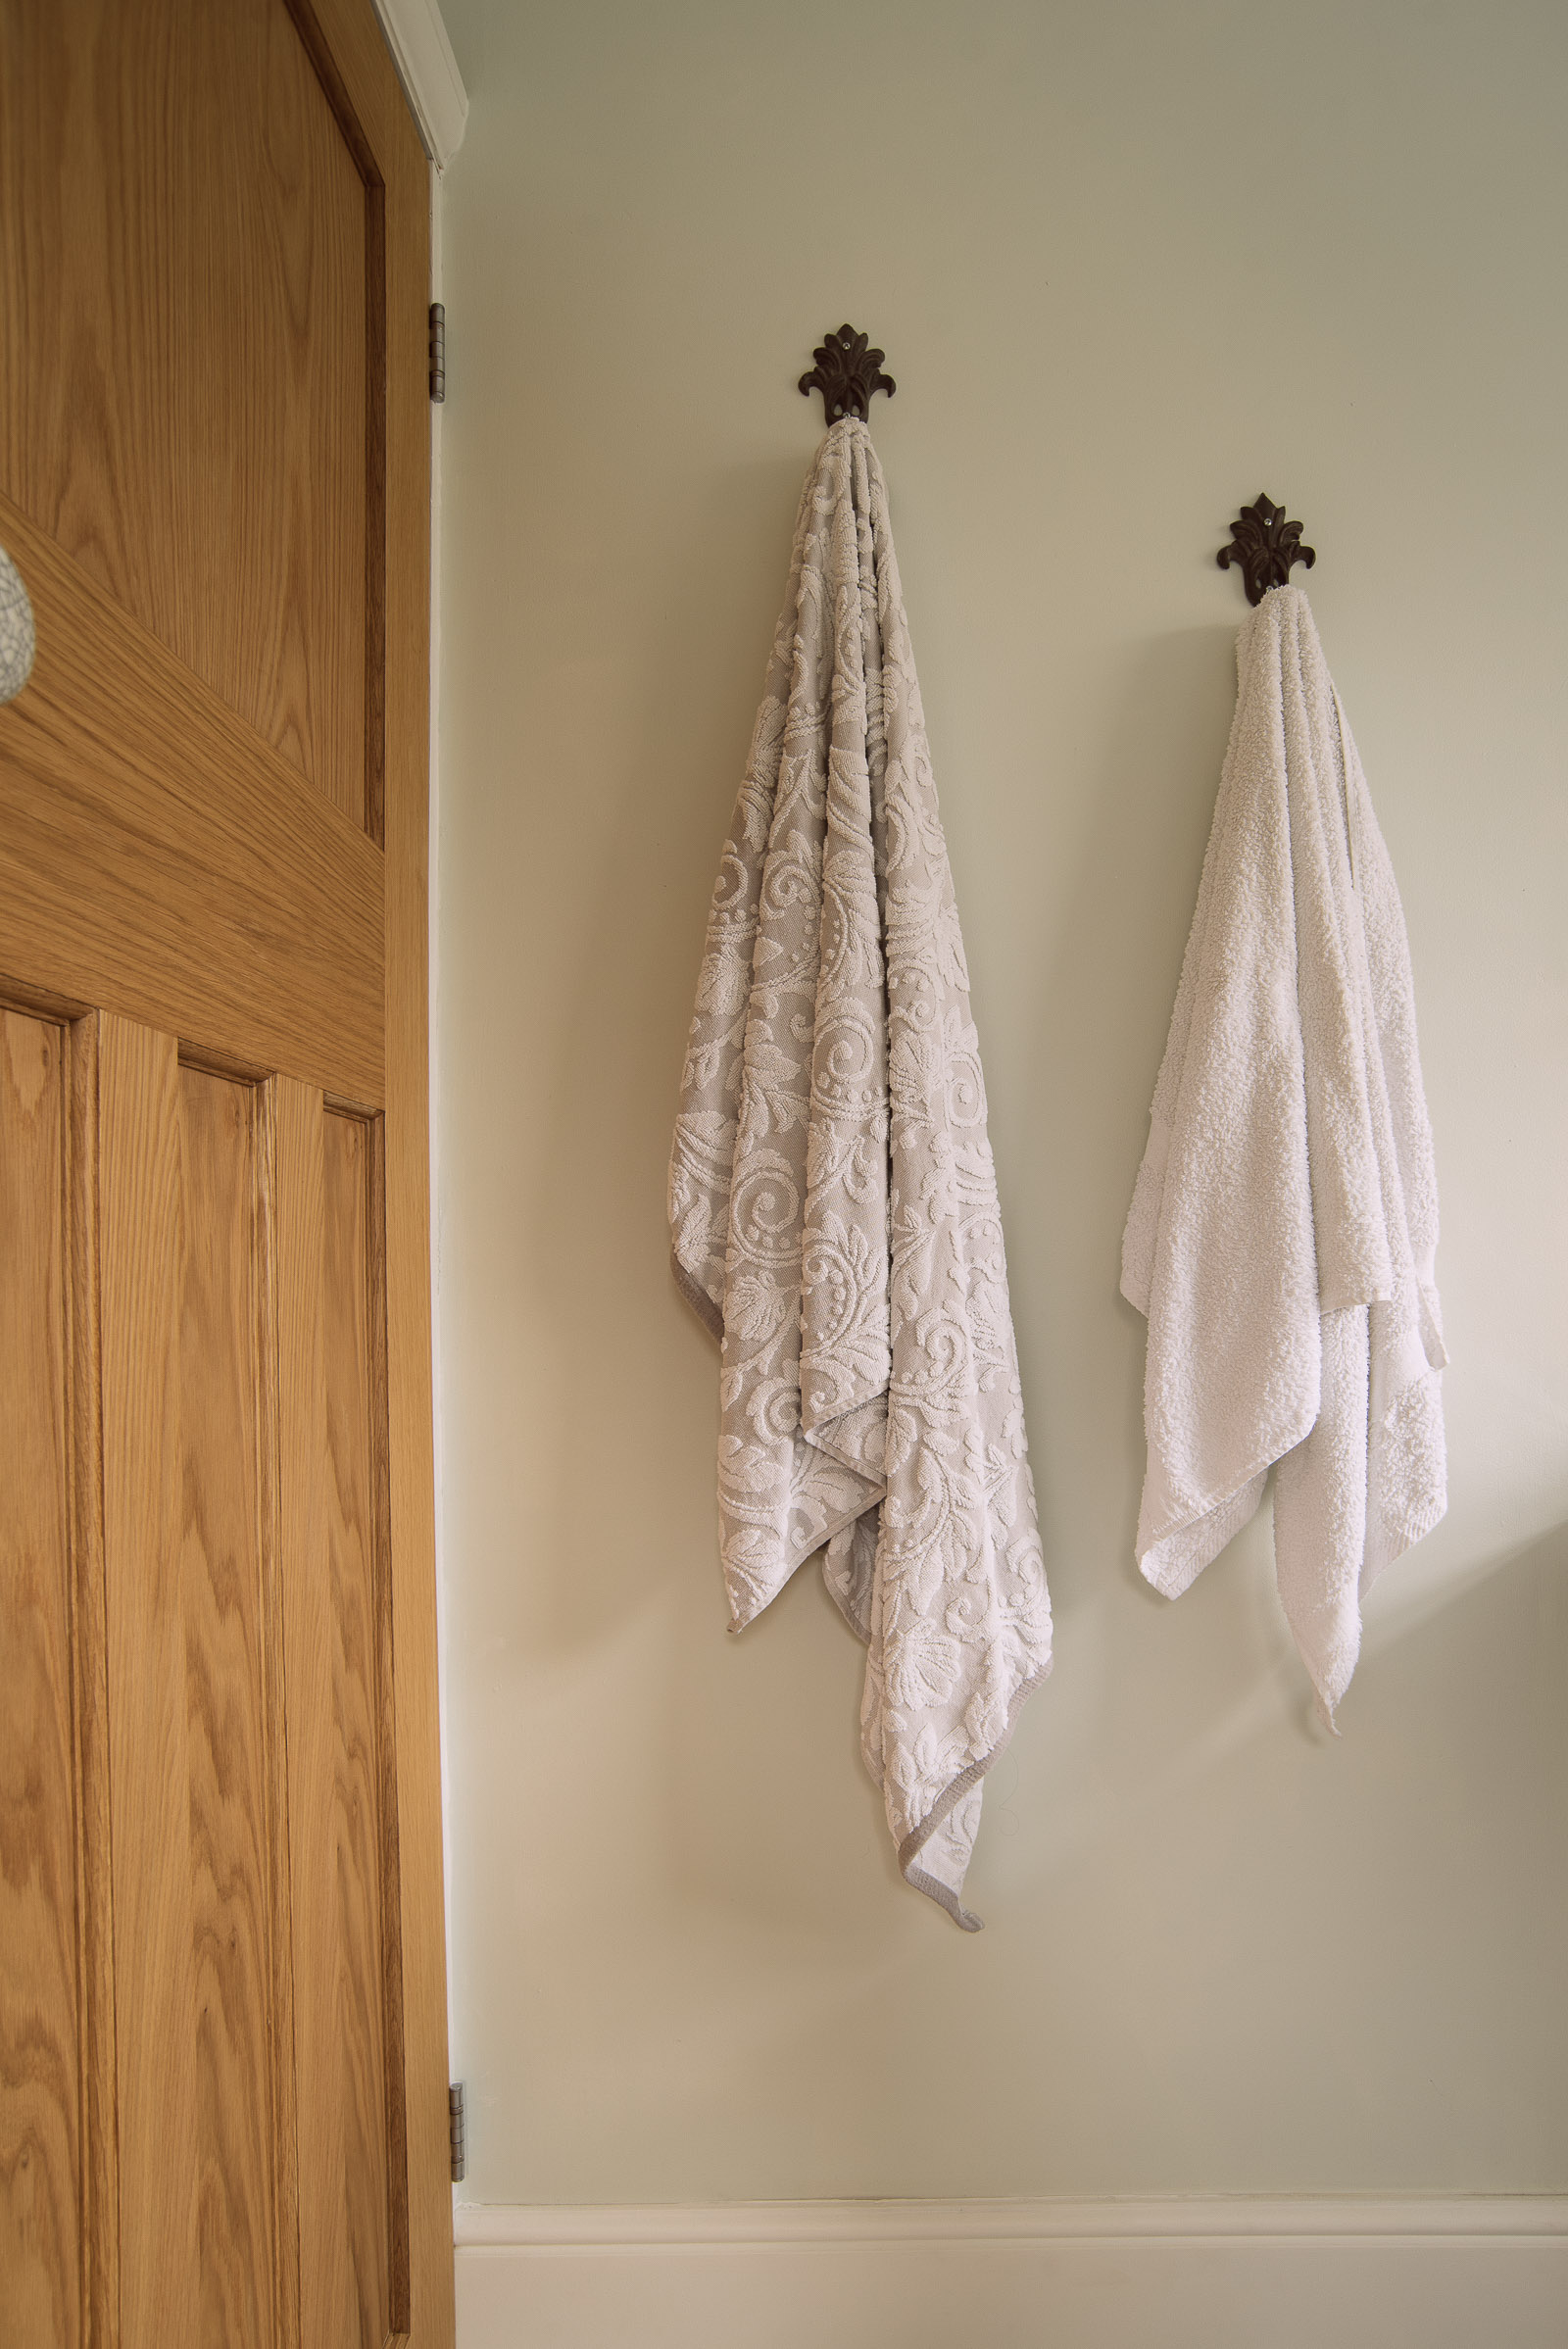 Fluffy towels in our new bathroom renovation